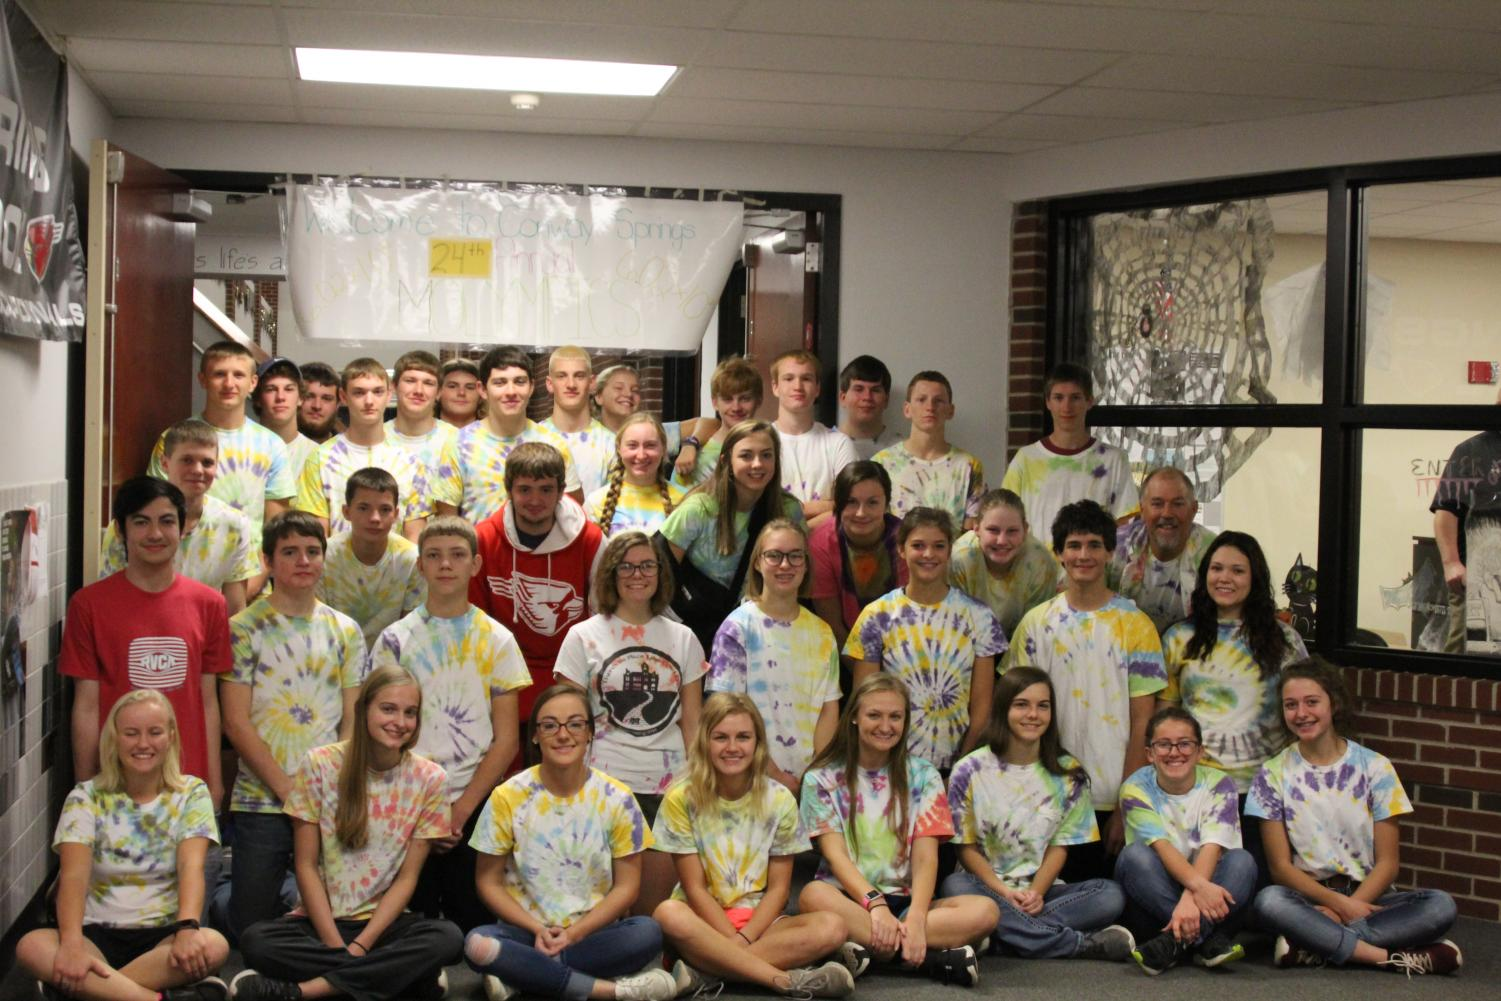 Both Chemistry classes gather together under the Molympics sign for a group photo.